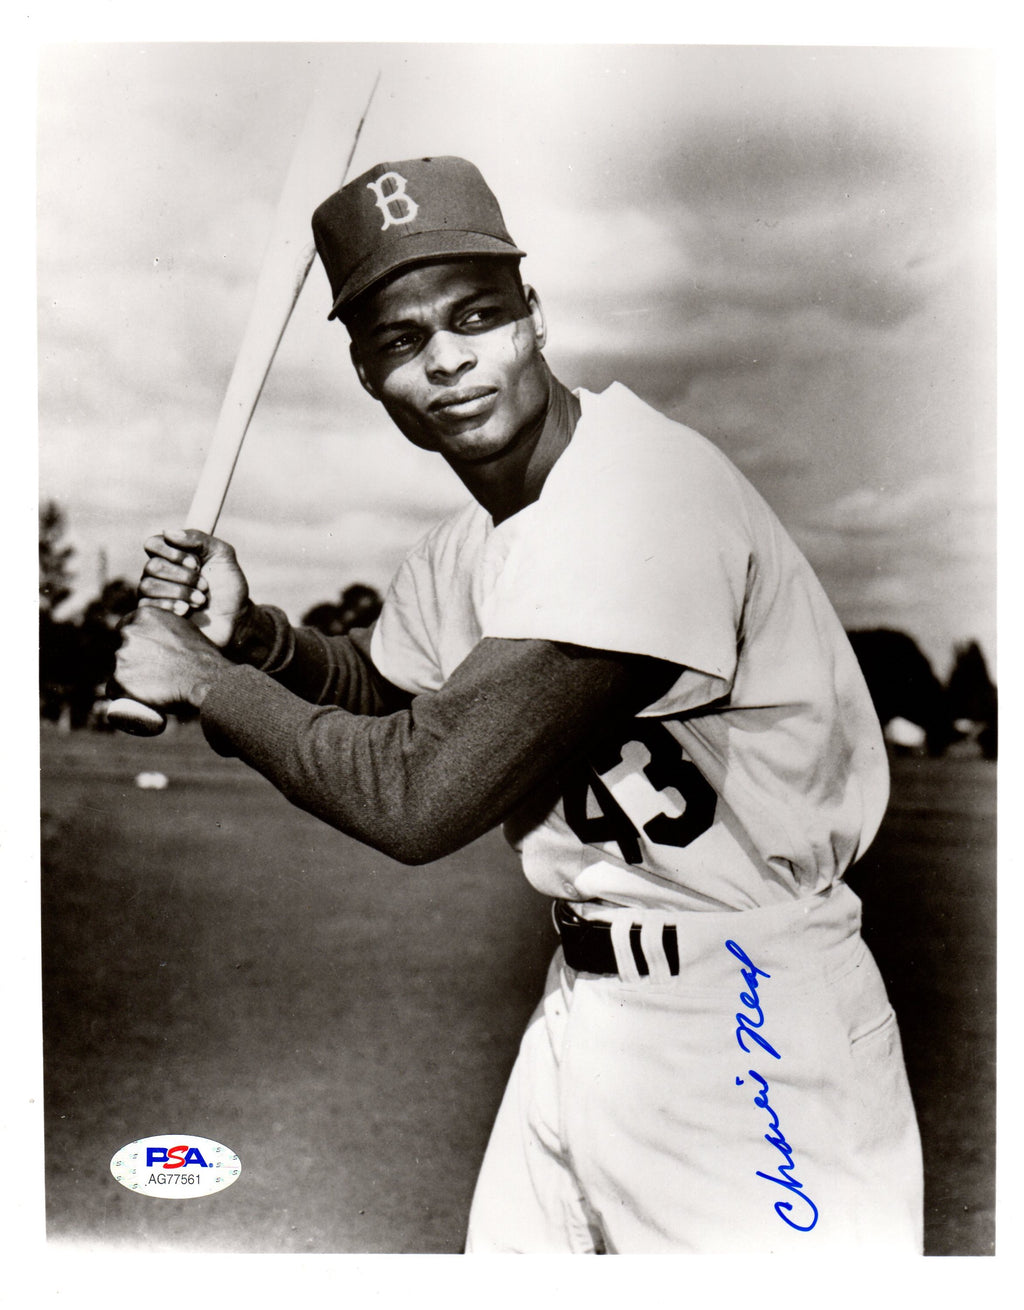 Charlie Neal autographed signed 8x10 photo MLB Brooklyn Dodgers PSA COA - JAG Sports Marketing